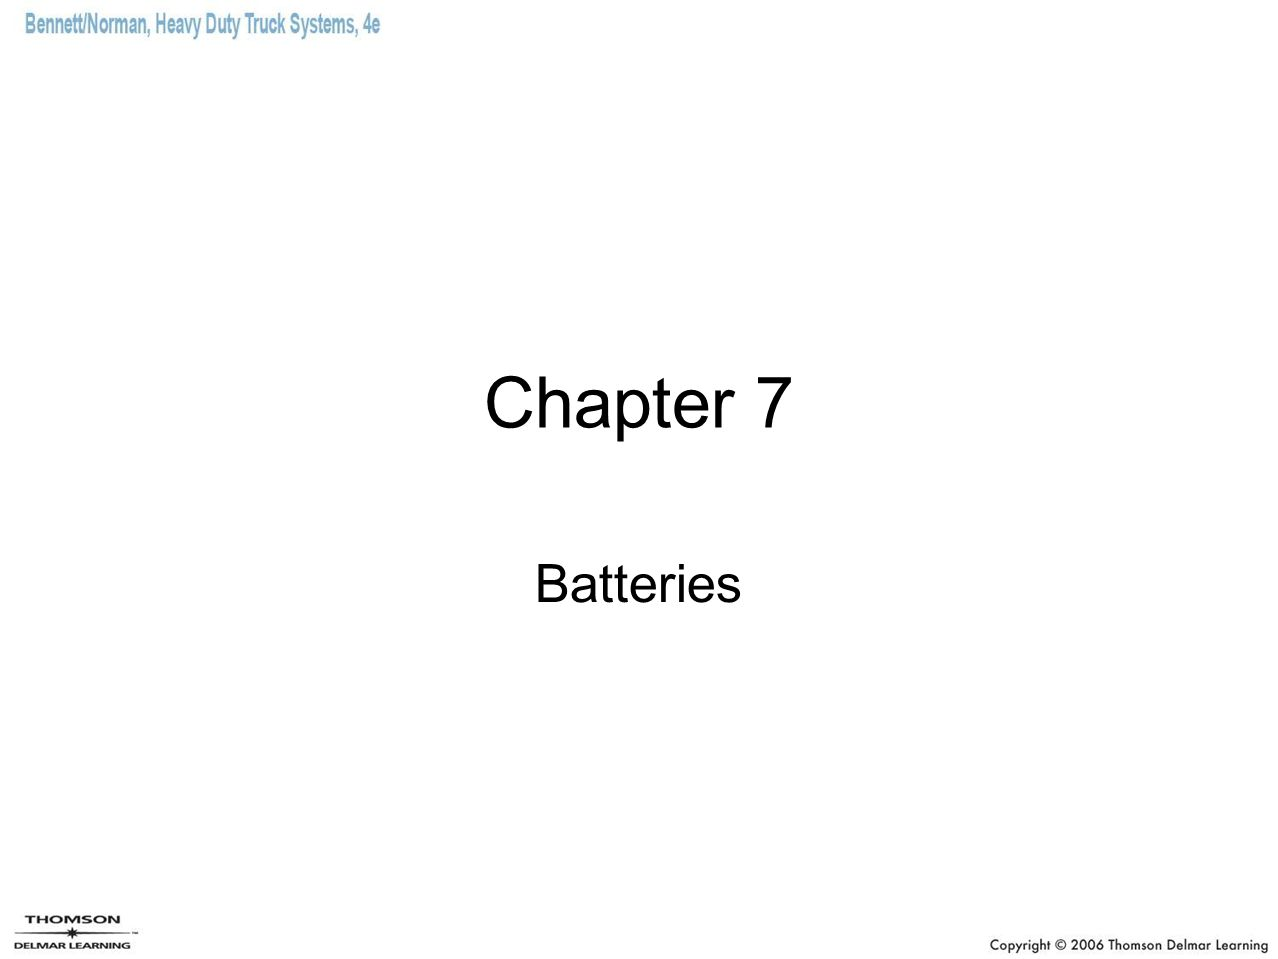 Chapter 7 Batteries